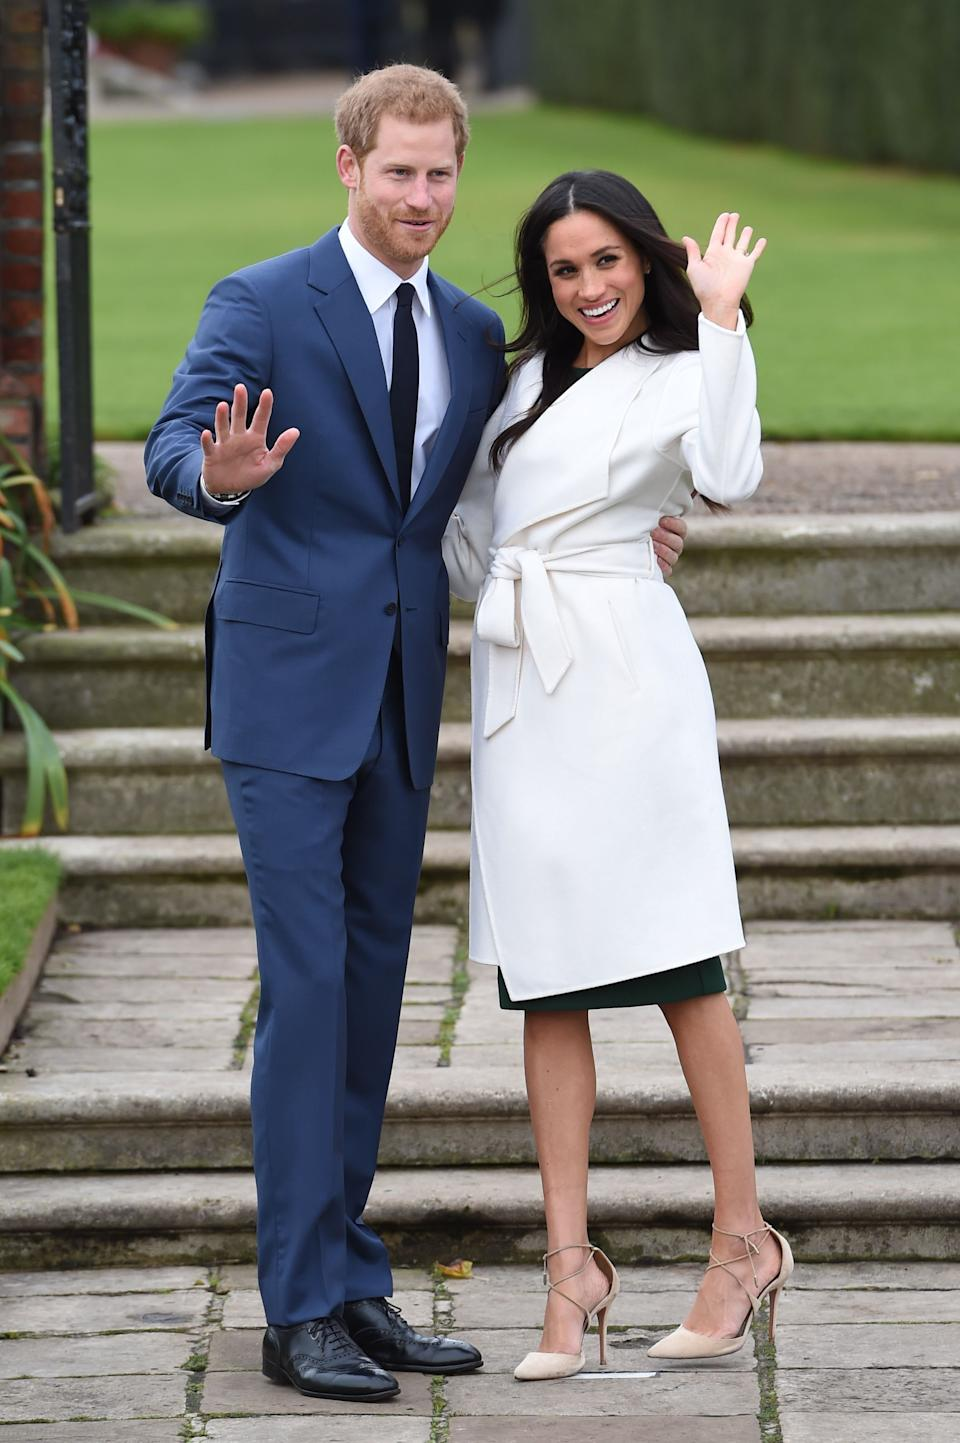 Prince Harry and Meghan Markle in the Sunken Garden at Kensington  after the announcement of their engagement in November 2017. [Photo: PA]